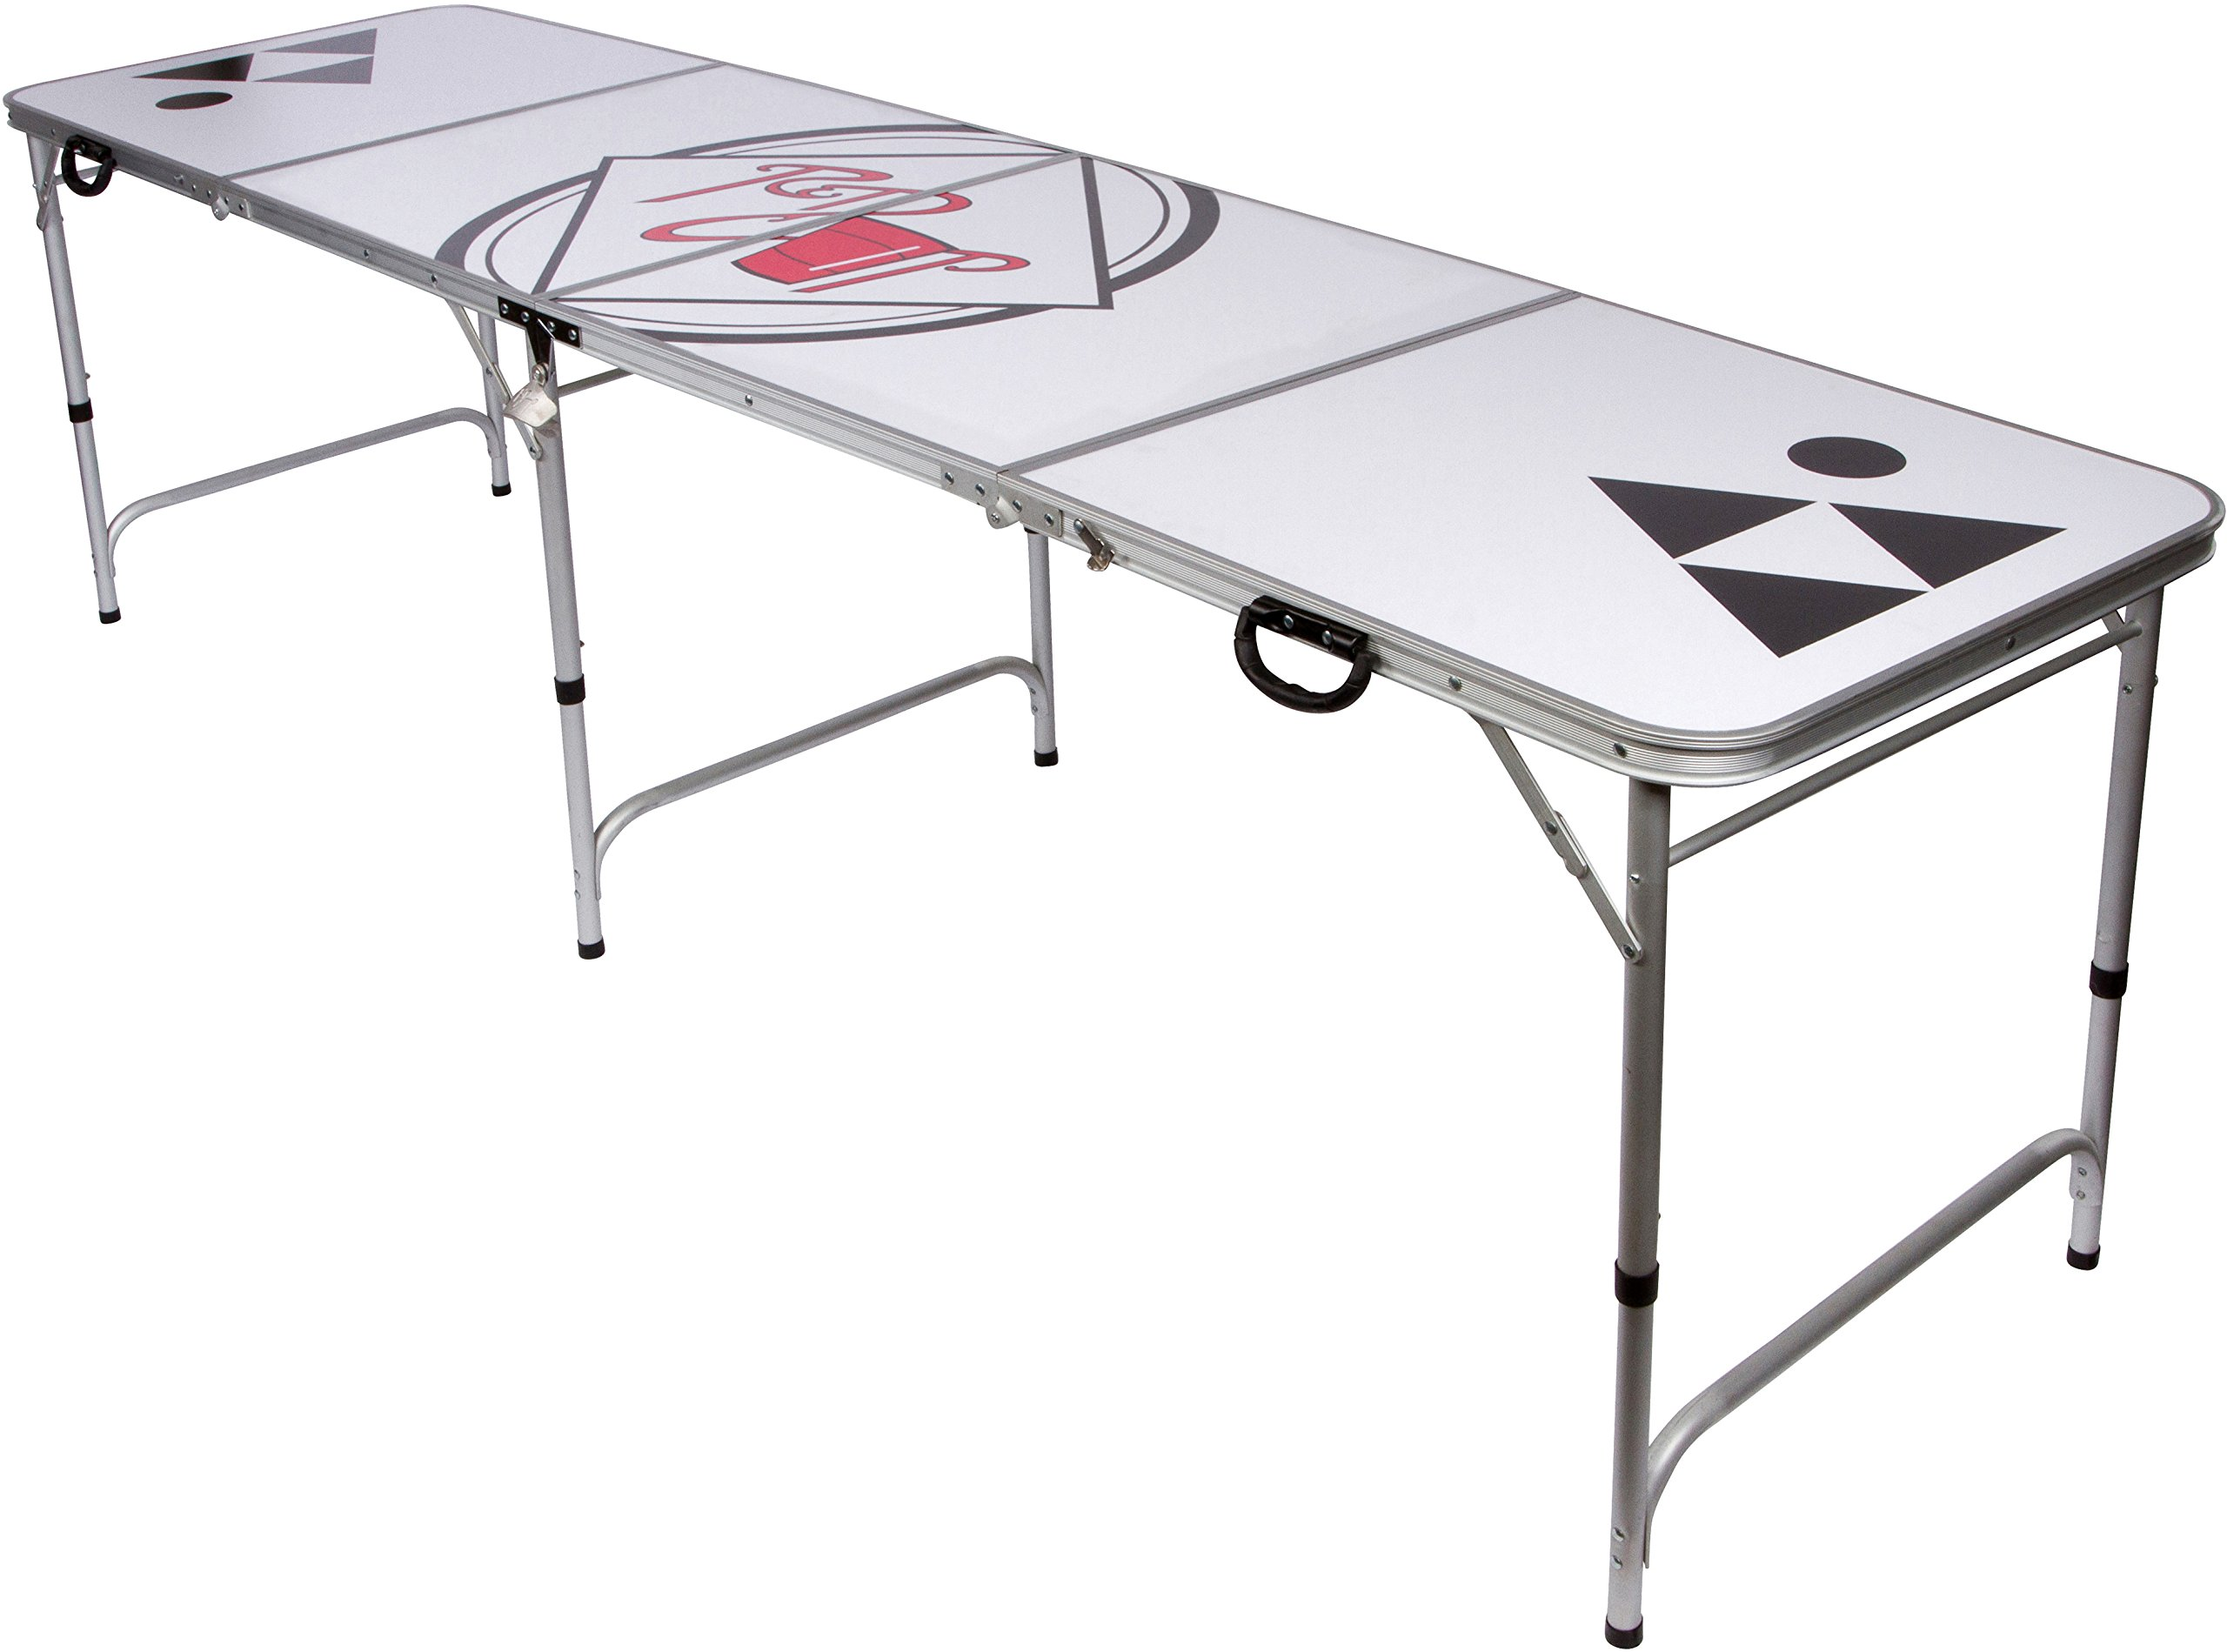 Red Cup Pong 8' Folding Beer Pong Table with Bottle Opener, Ball Rack and 6 Pong Balls - Classic Design